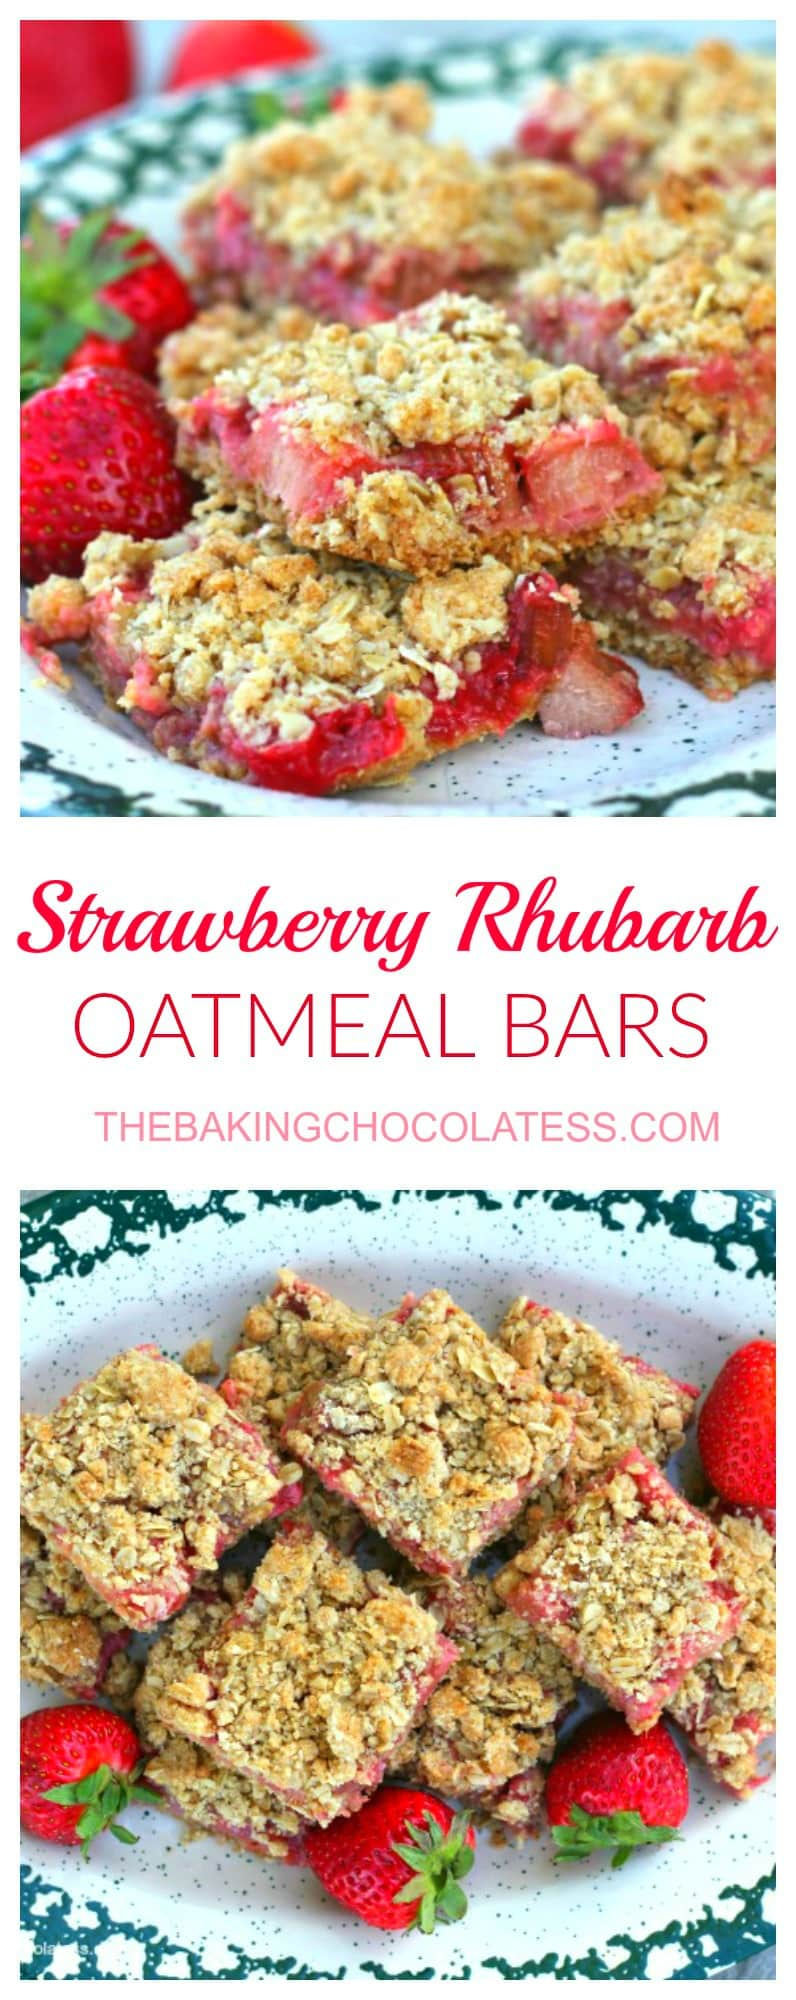 Awesome Strawberry Rhubarb Oatmeal Bars